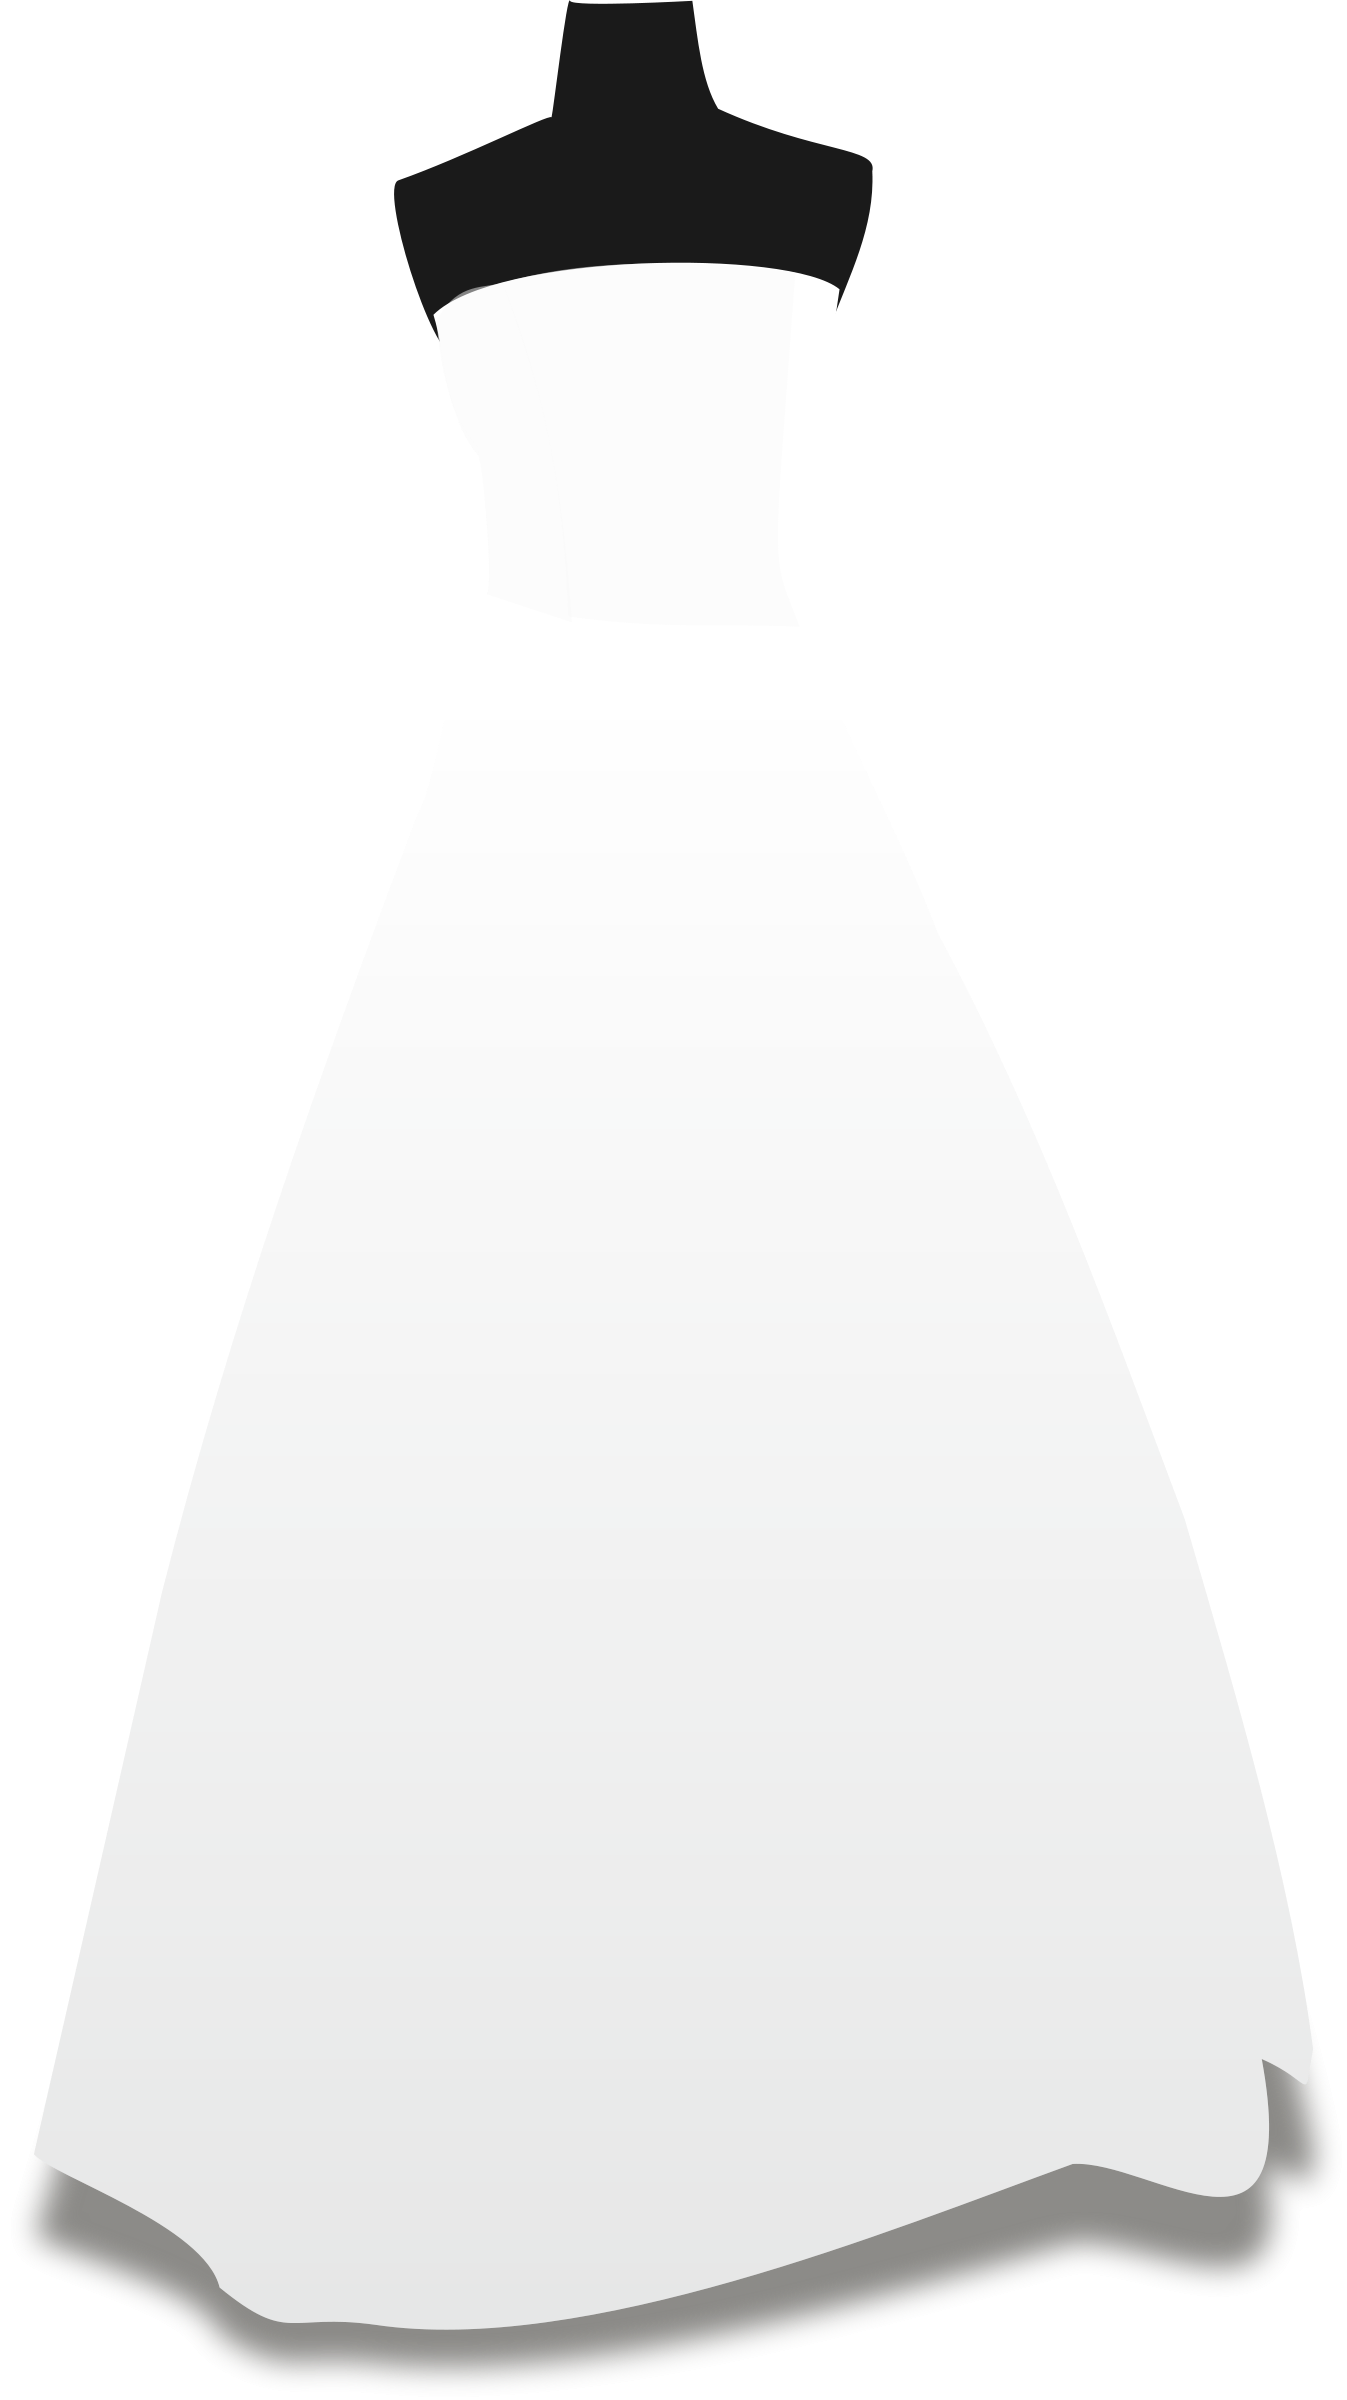 Bride dress png. Wedding clipart panda free